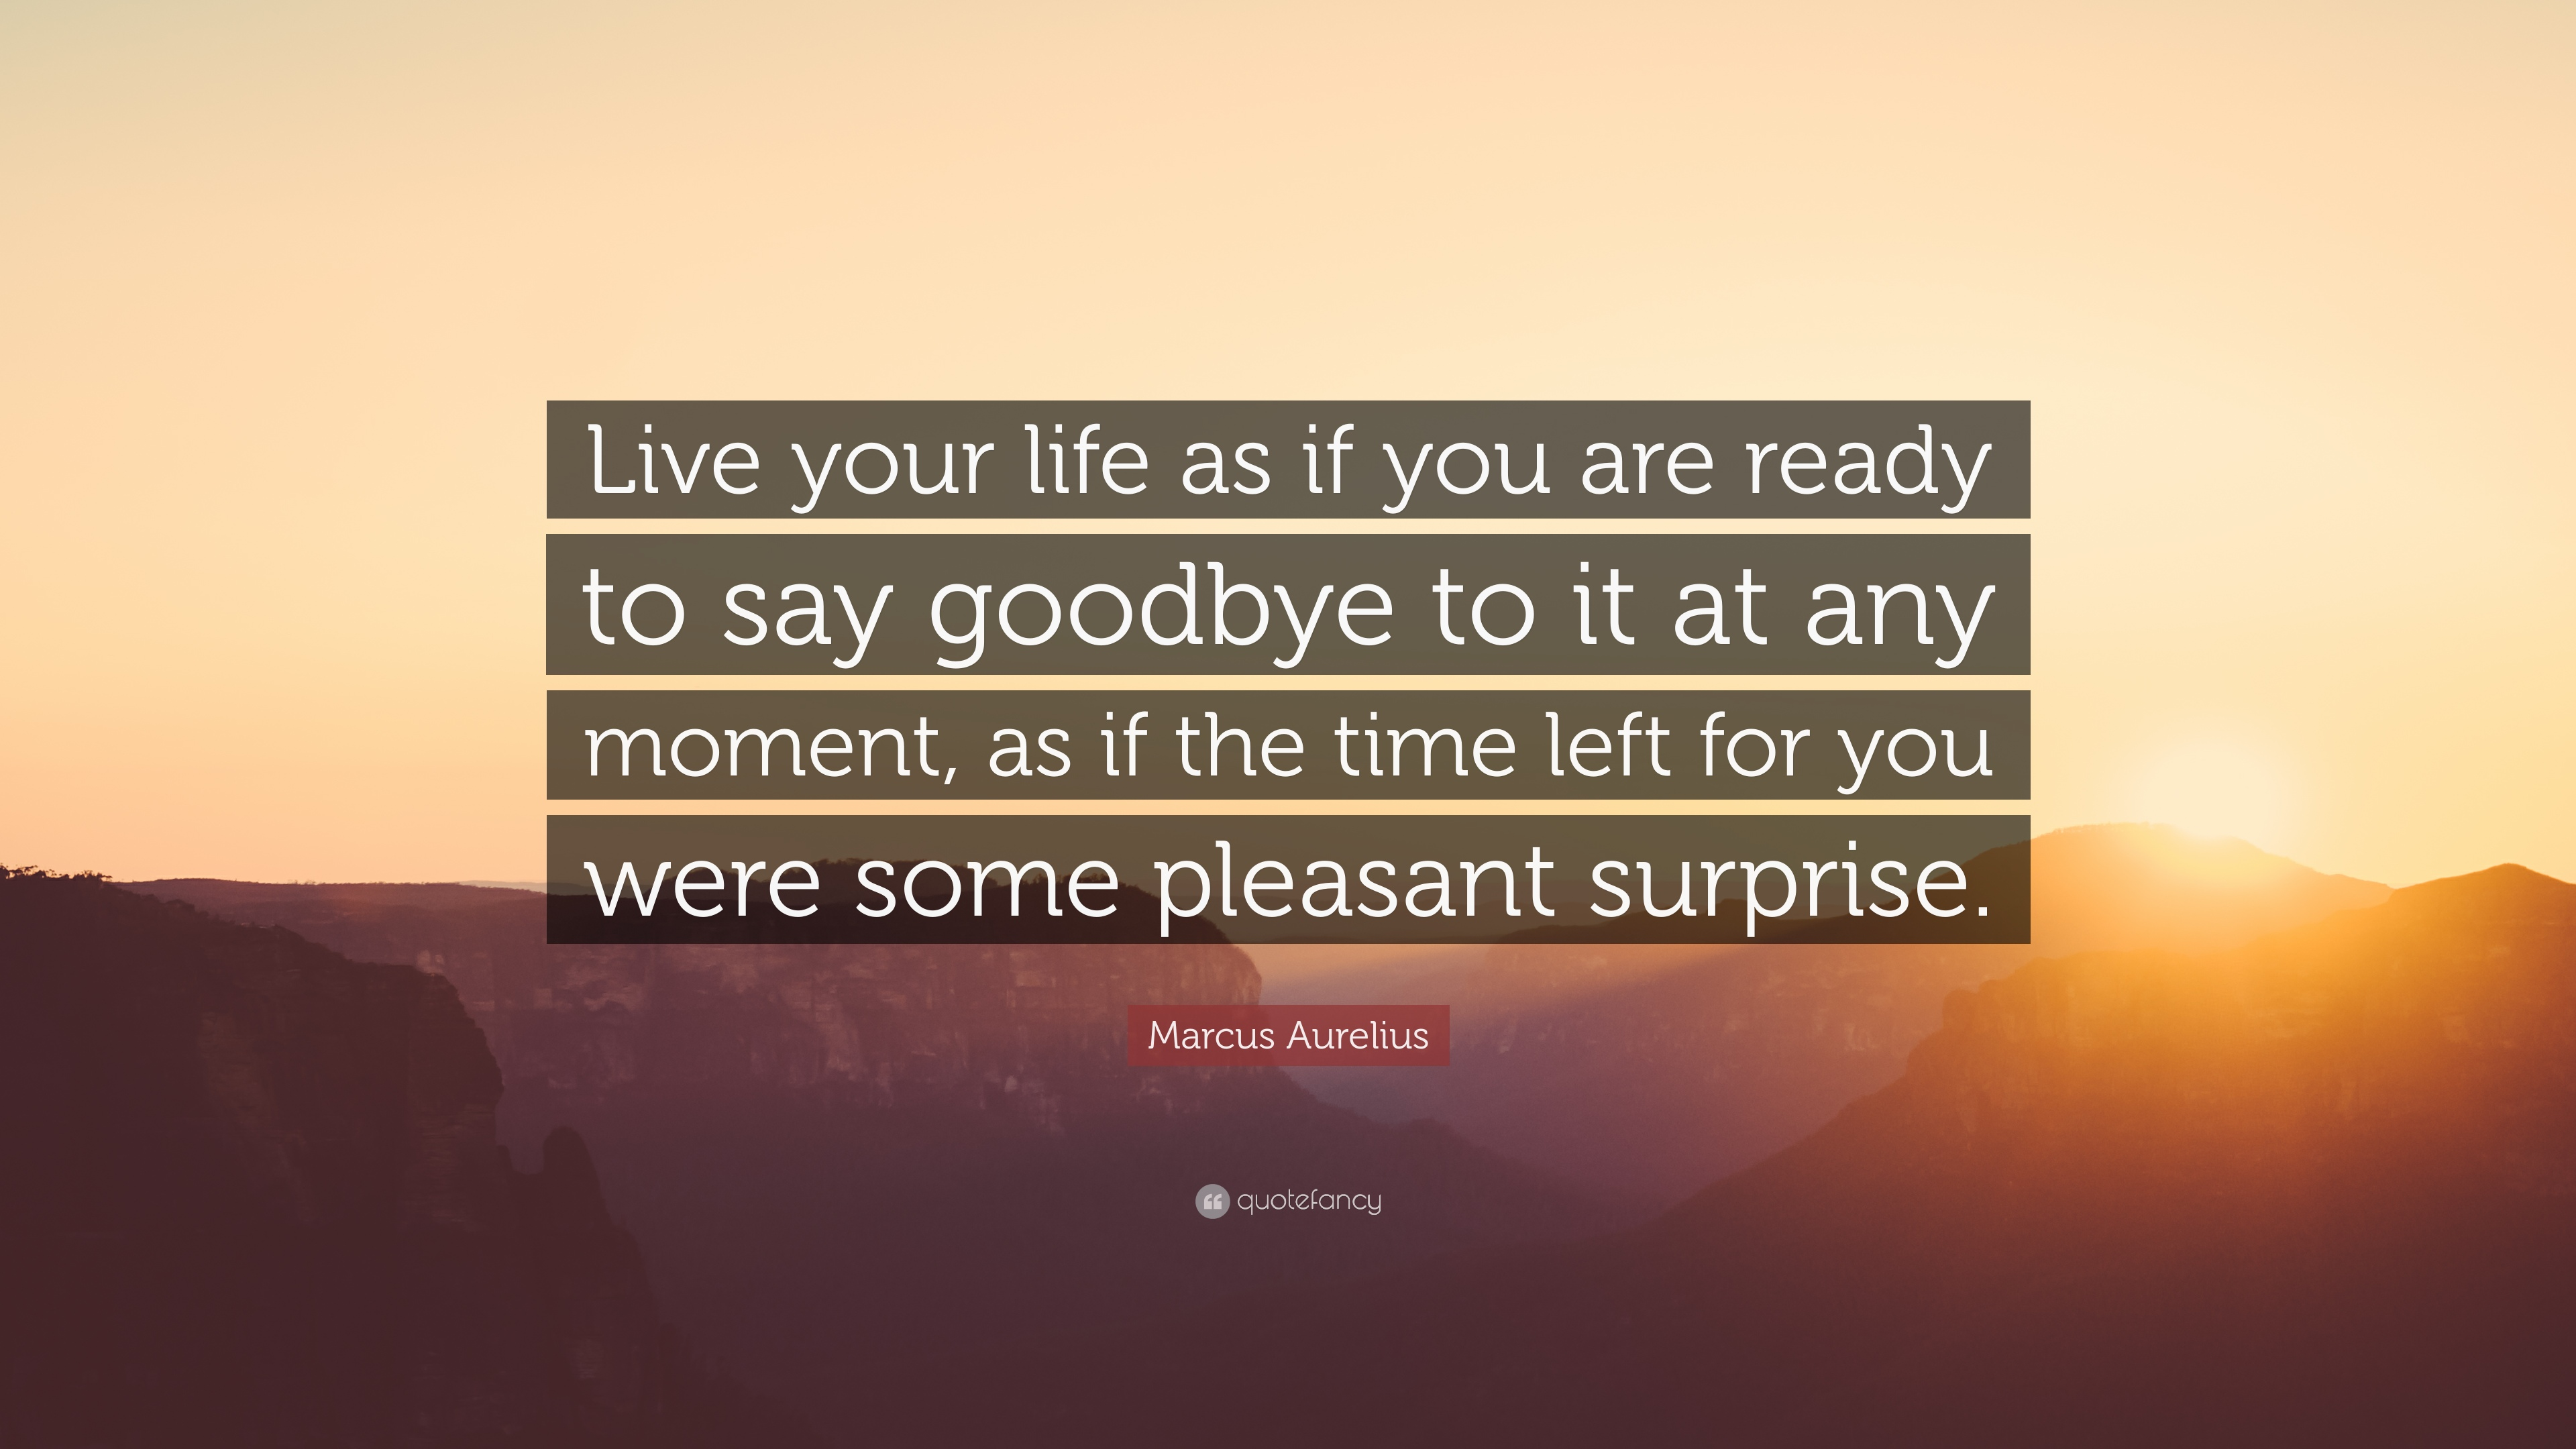 Superb Marcus Aurelius Quote: U201cLive Your Life As If You Are Ready To Say Goodbye